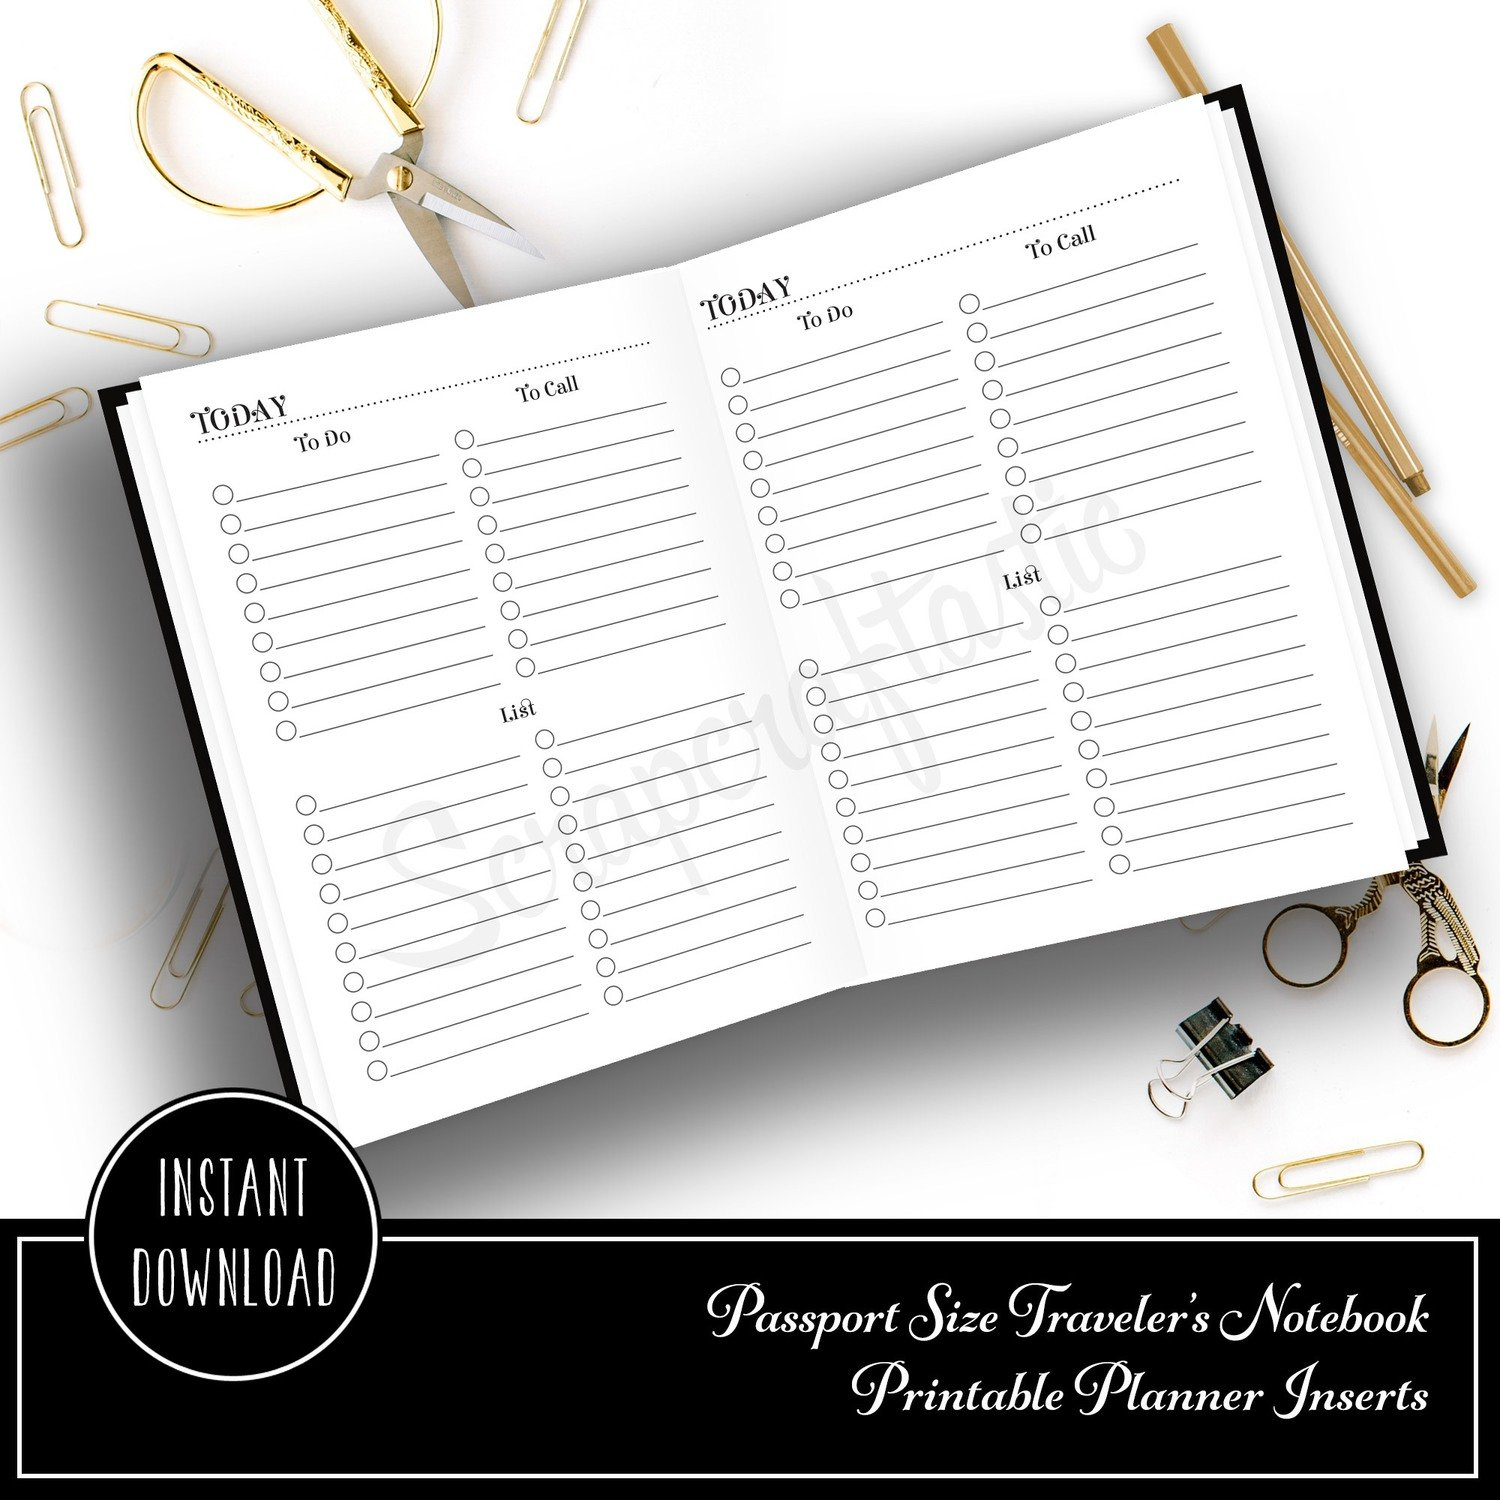 Multi List Passport Size Traveler's Notebook Printable Planner Inserts